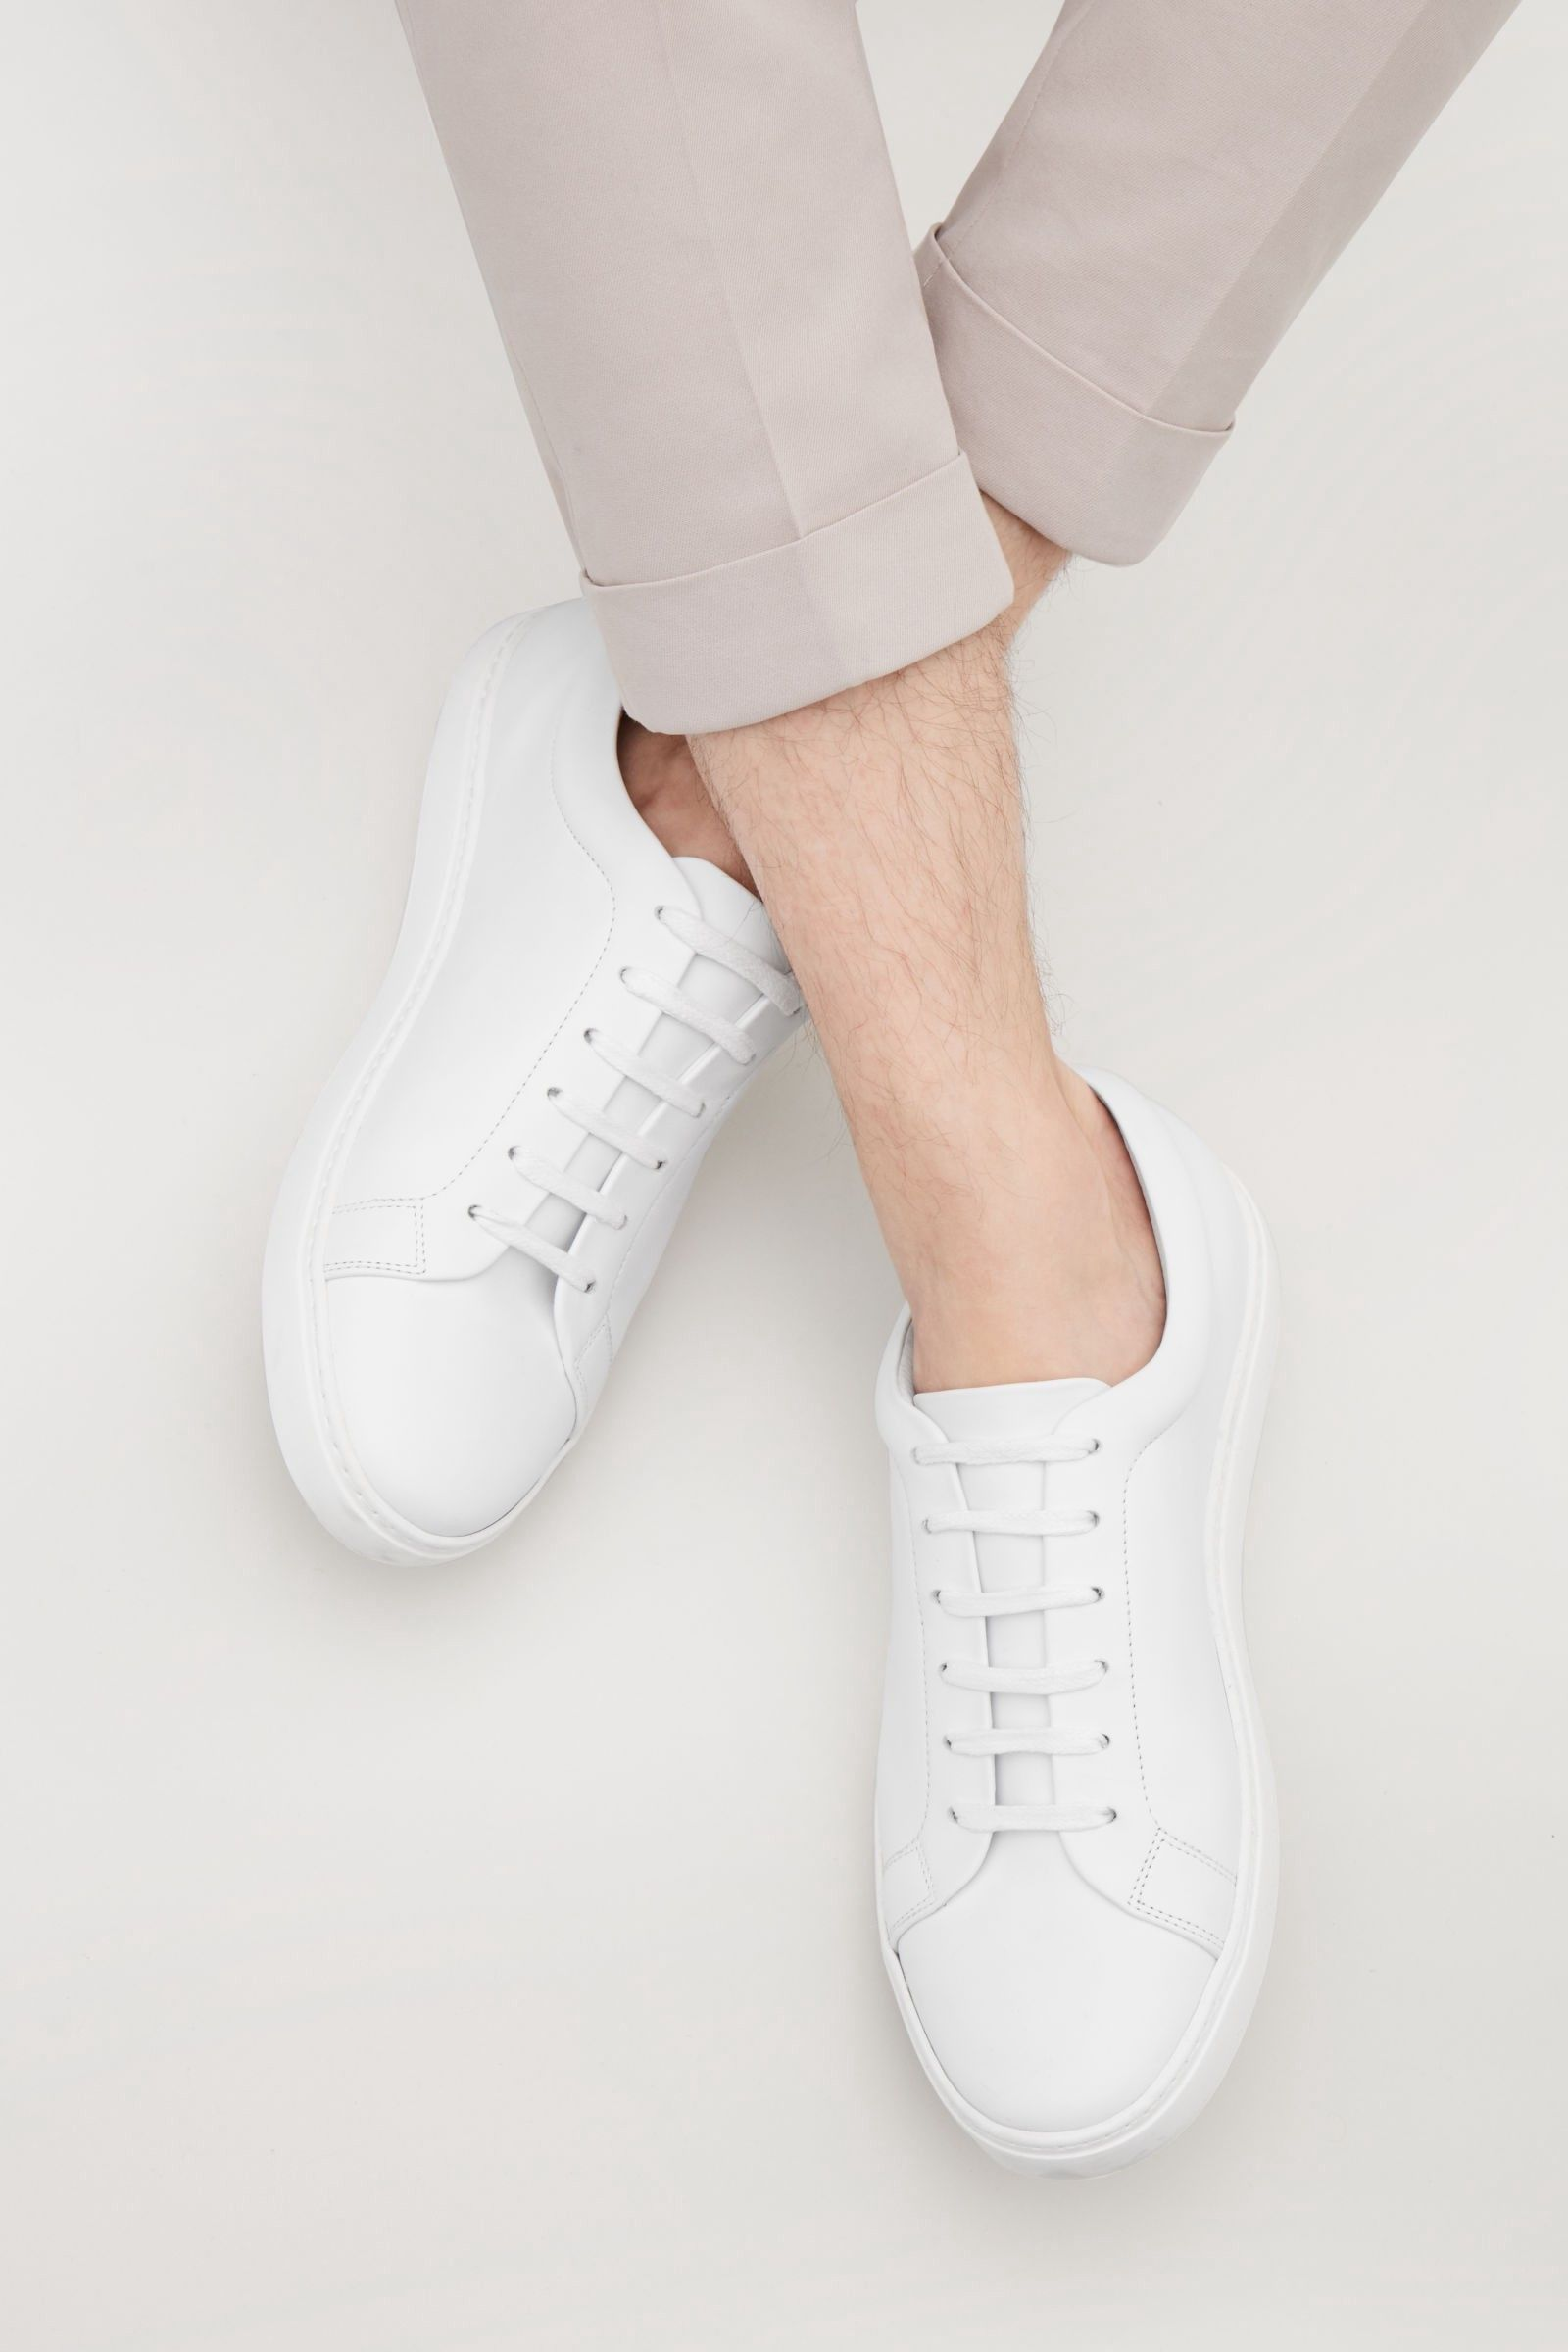 9ba97bca237 Cos Slim-Sole Lace-Up Sneakers - White 8.5 in 2019